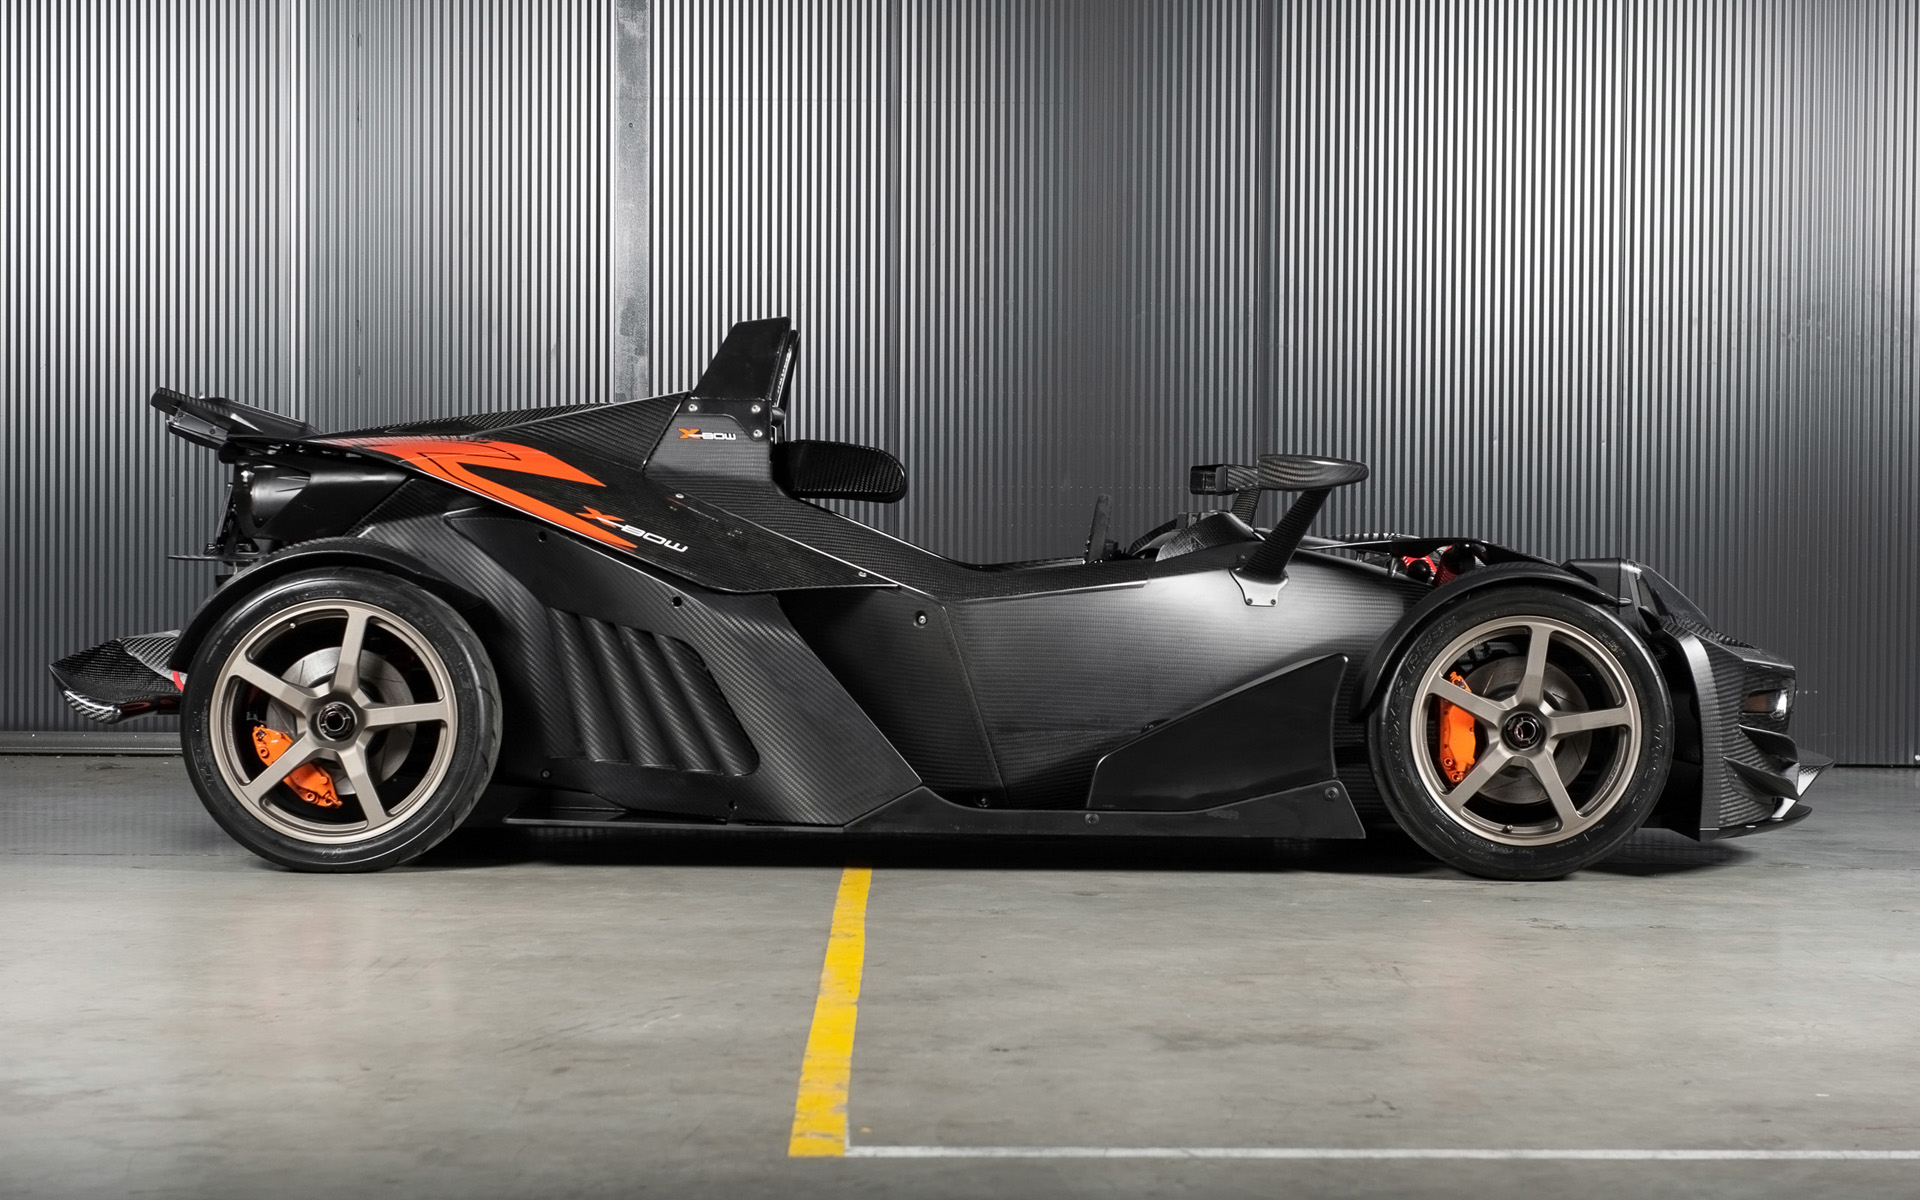 Dodge Muscle Car Wallpaper 2014 Ktm X Bow Rr News And Information Conceptcarz Com